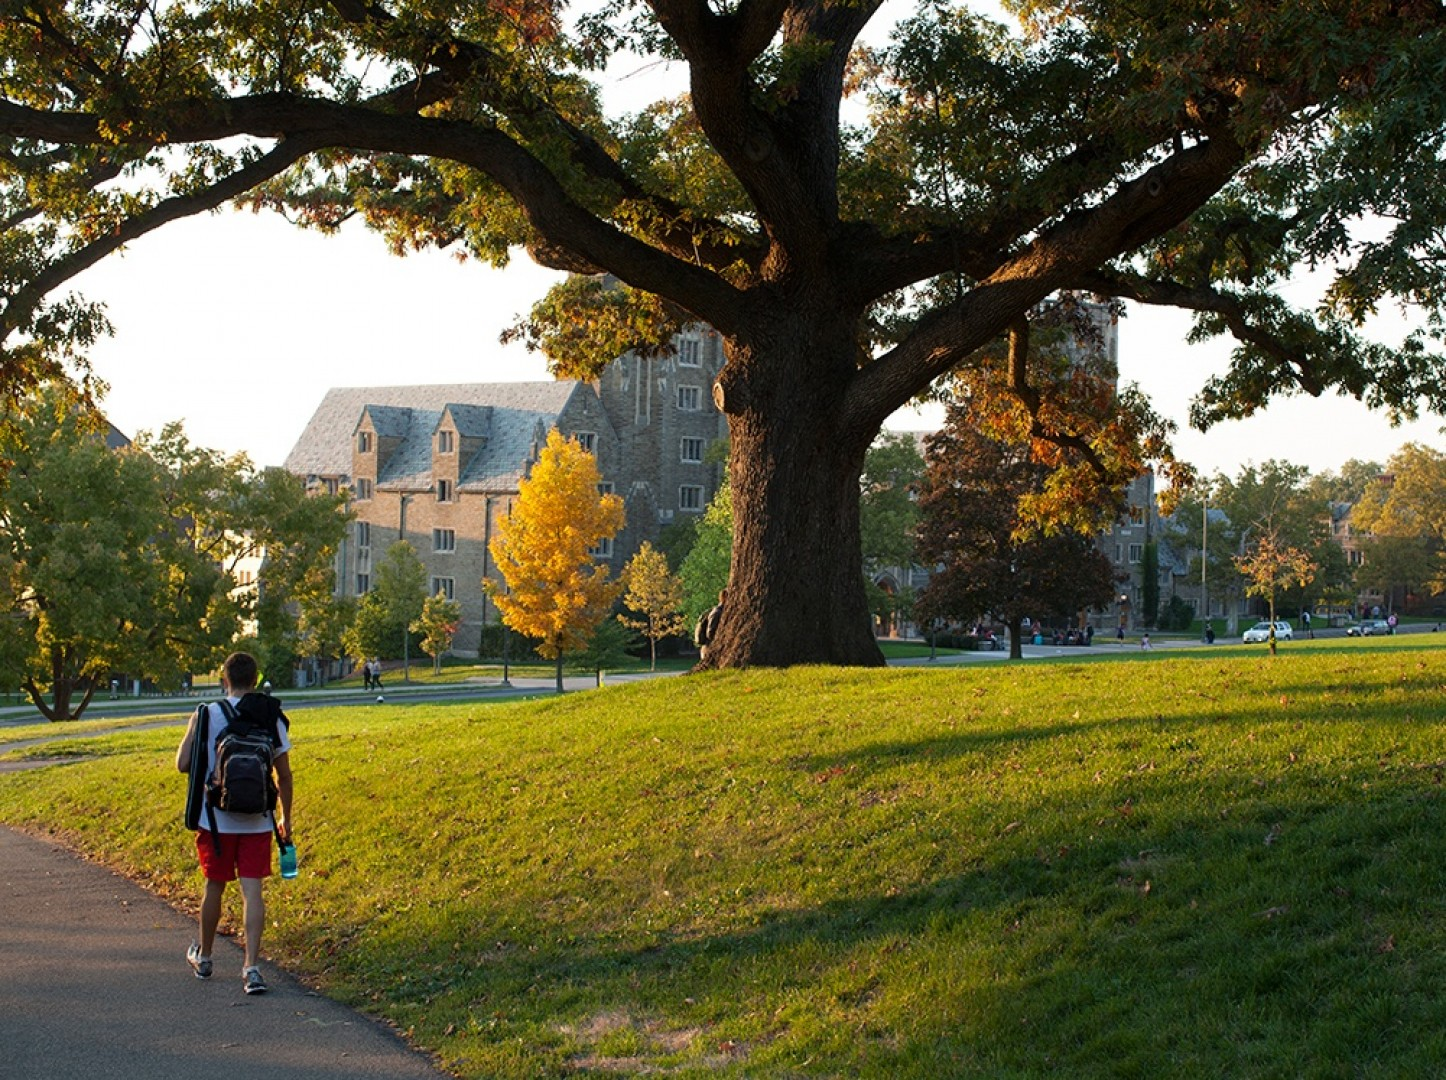 In a 2009 survey, this 350-year-old white oak on the southern end of Libe Slope was identified as the oldest tree on Cornell's main campus.